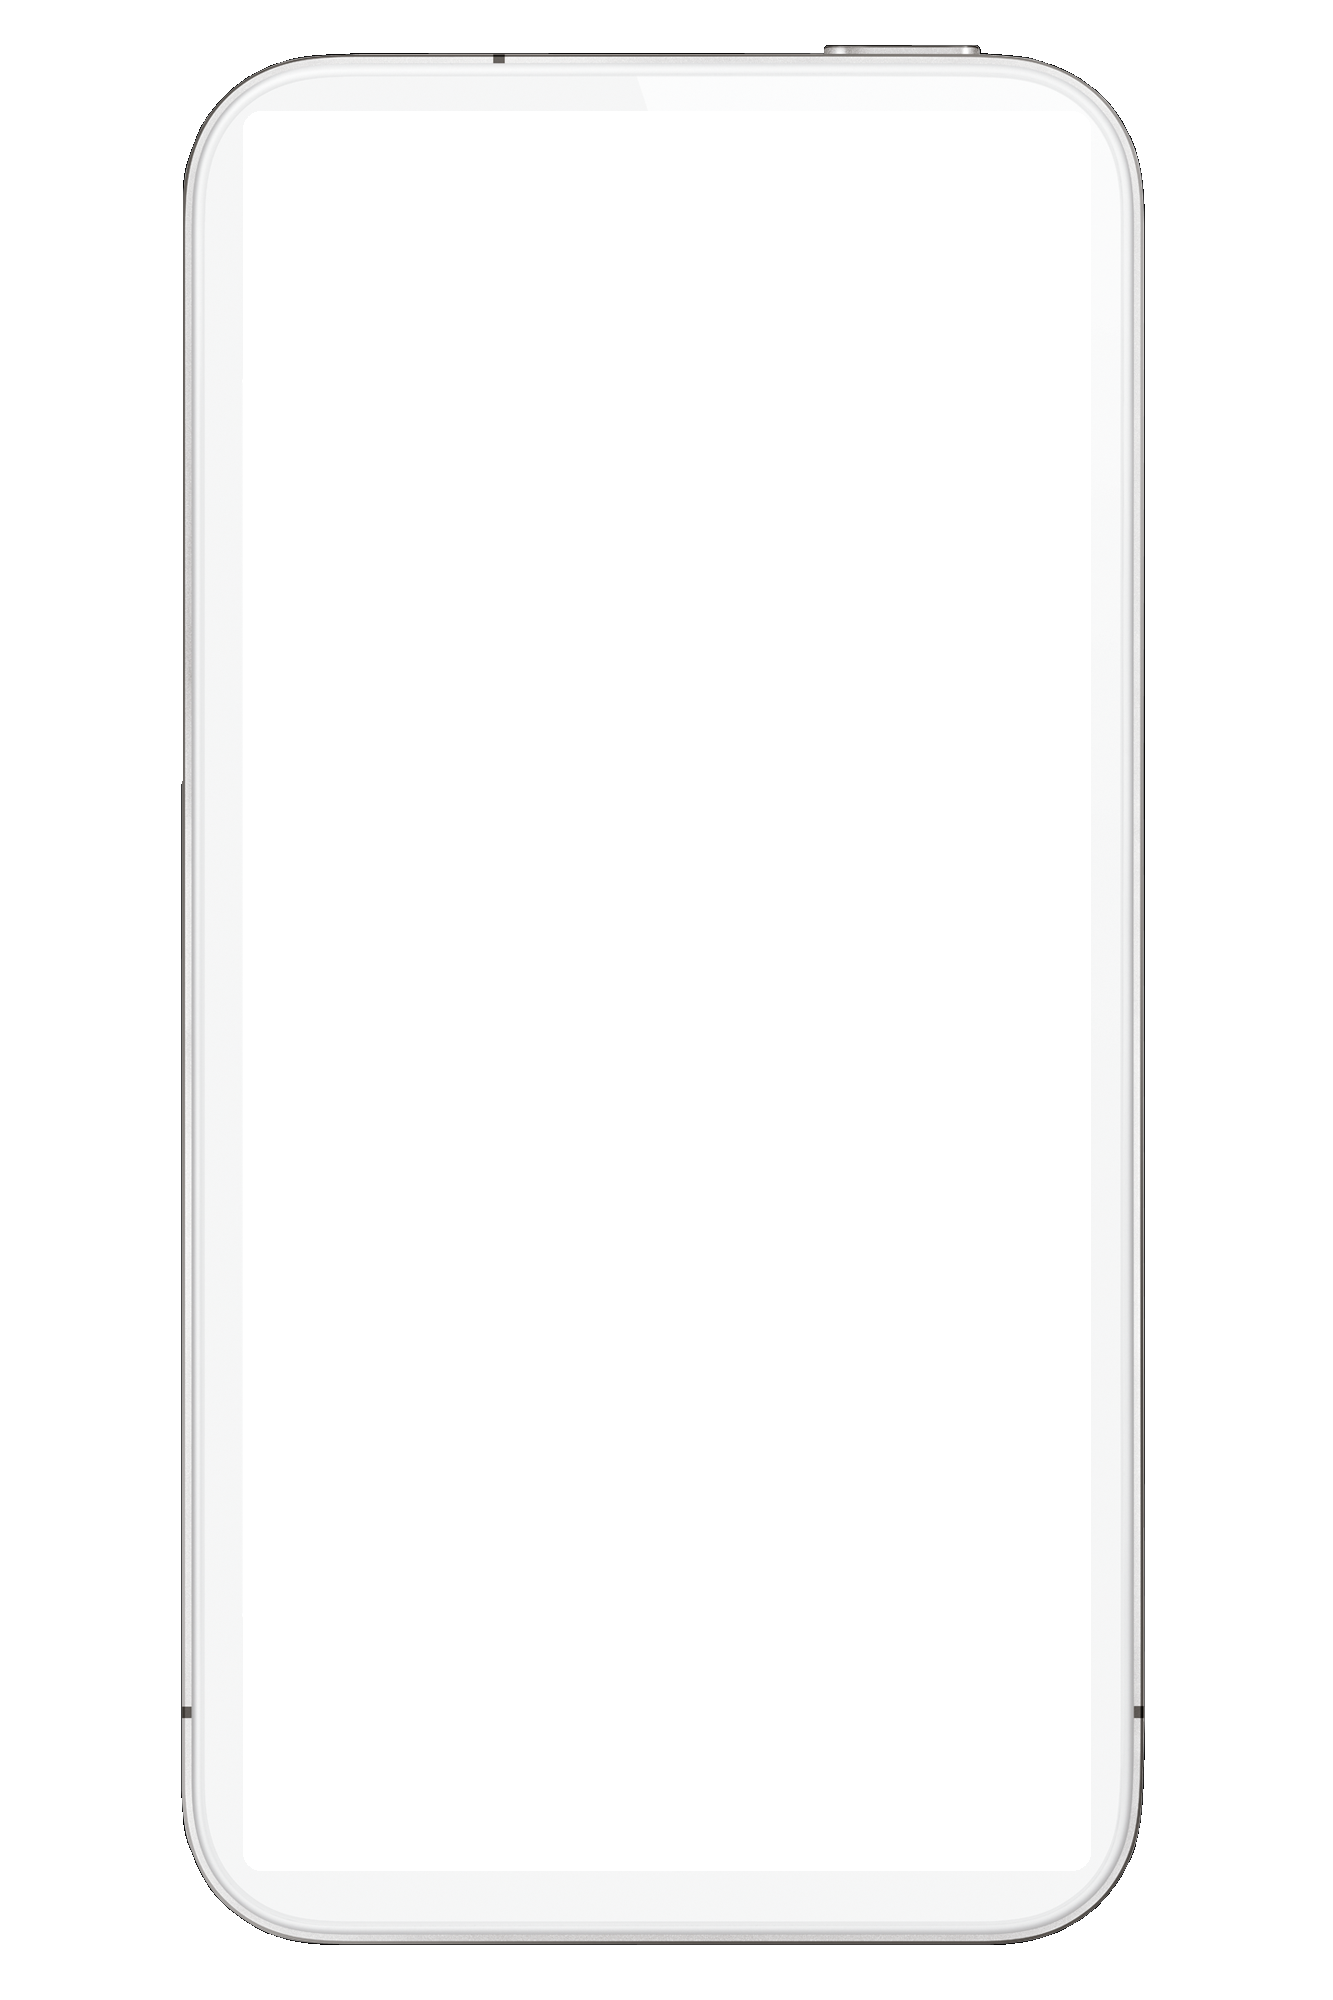 Iphone 4 4s Template